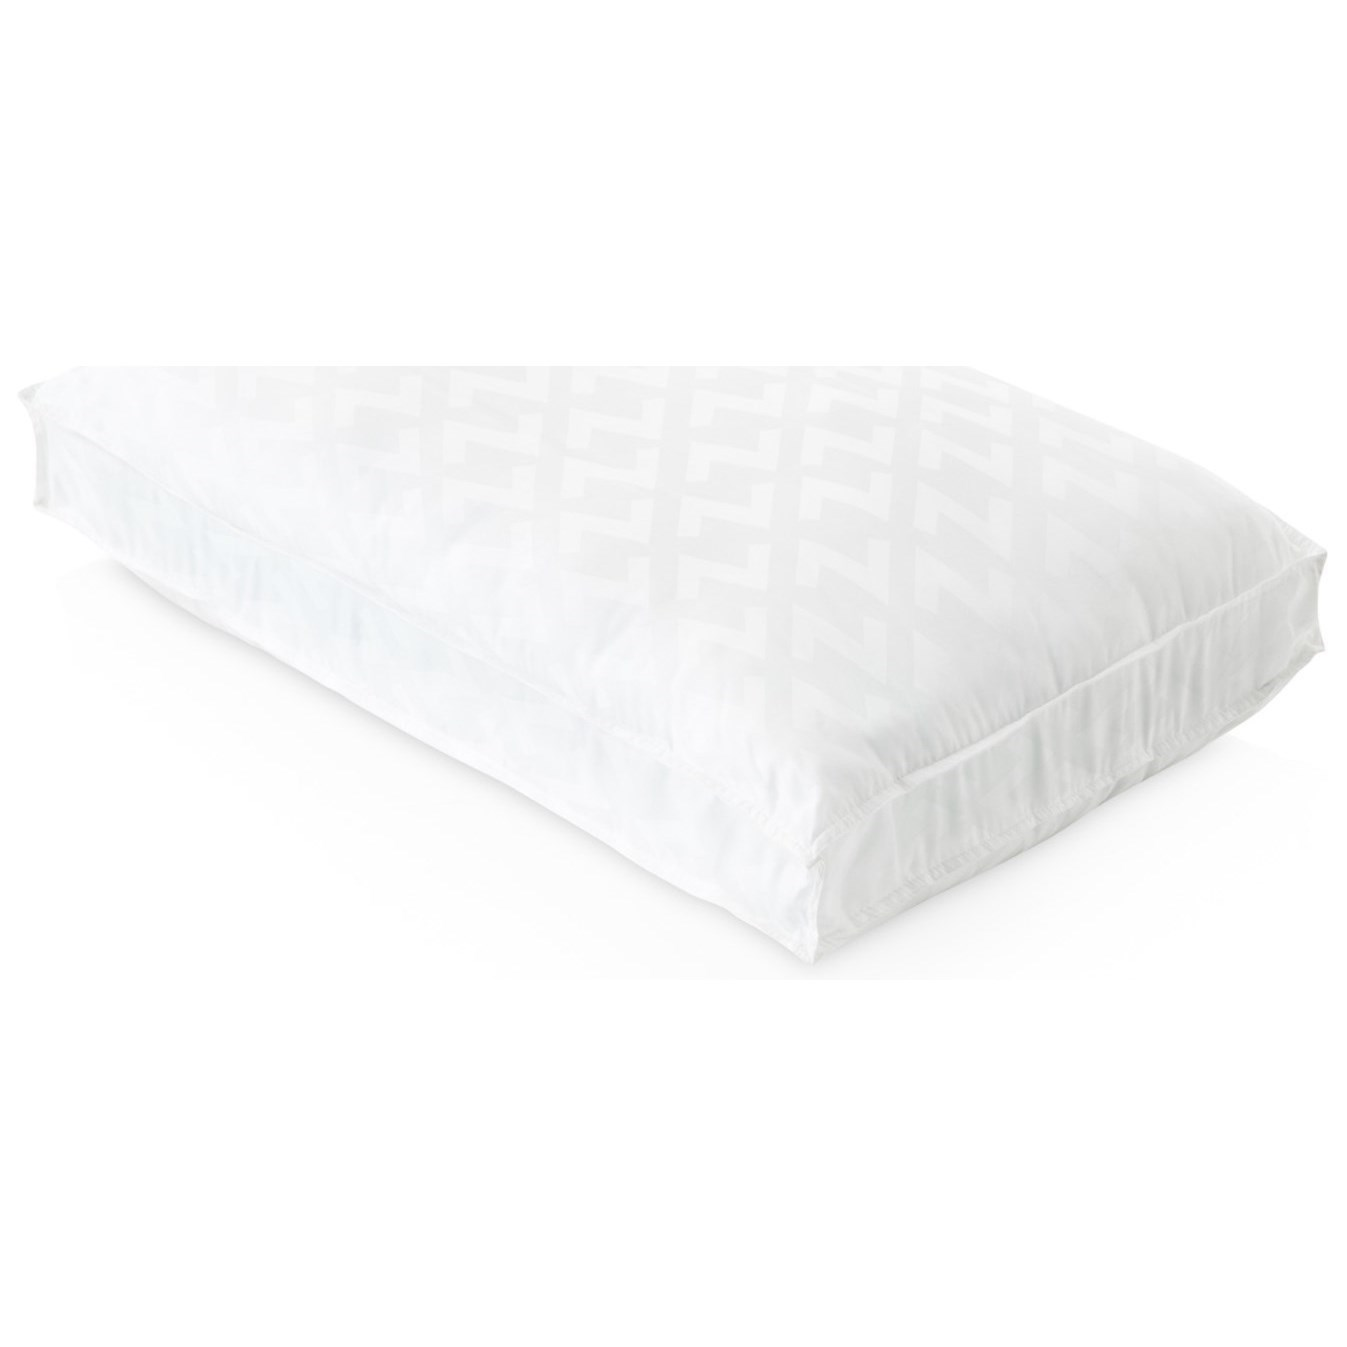 Malouf Gel Convolution™ Queen Gel Convolution™ High Loft Pillow - Item Number: ZZQQHPCOGF